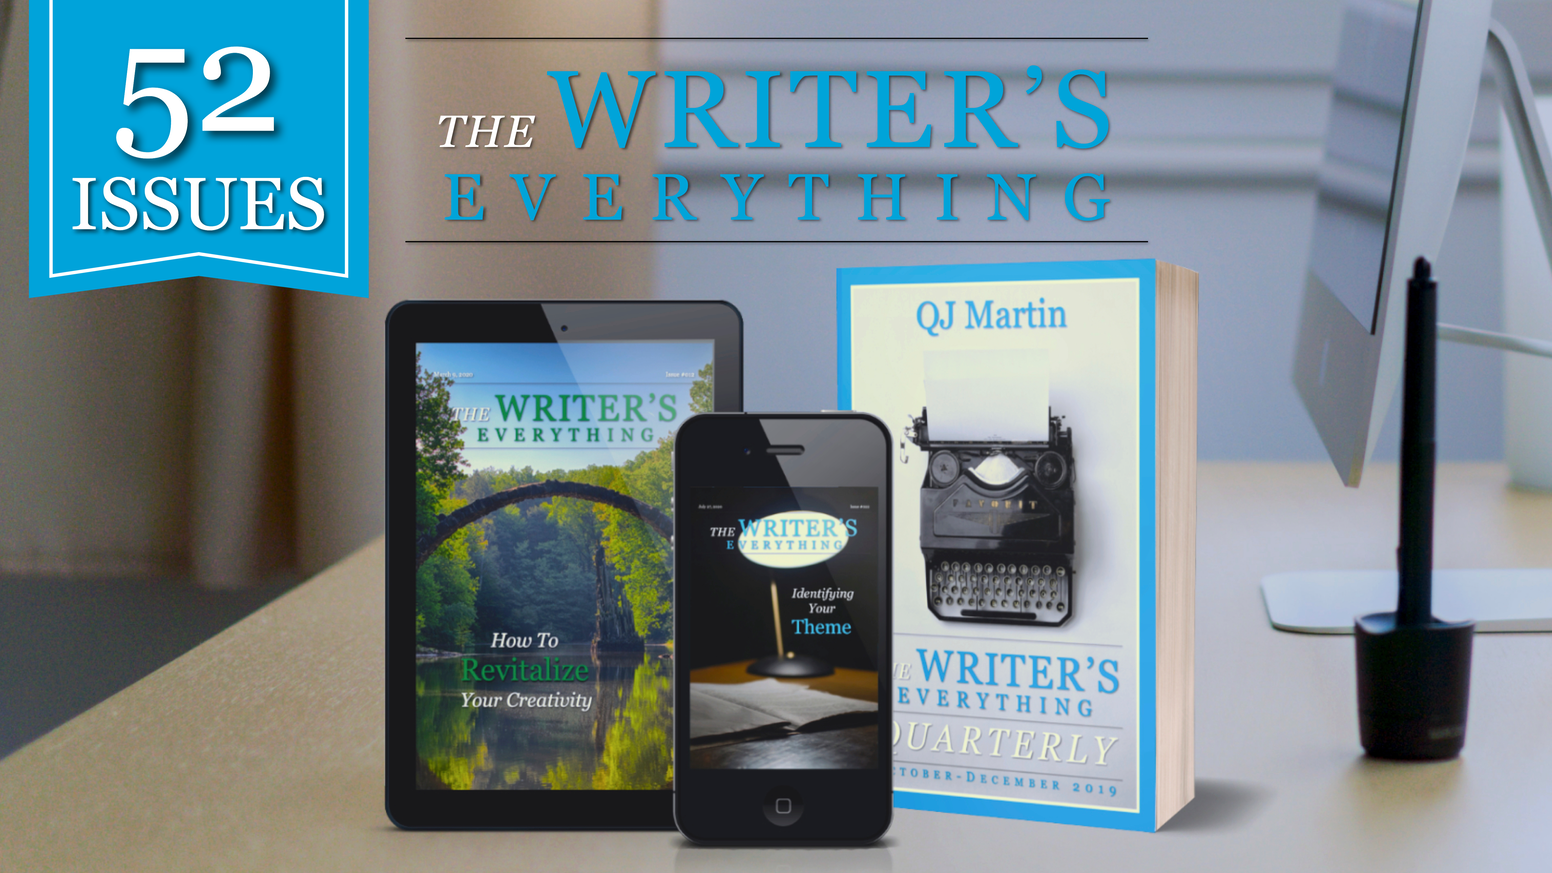 The Writer's Everything